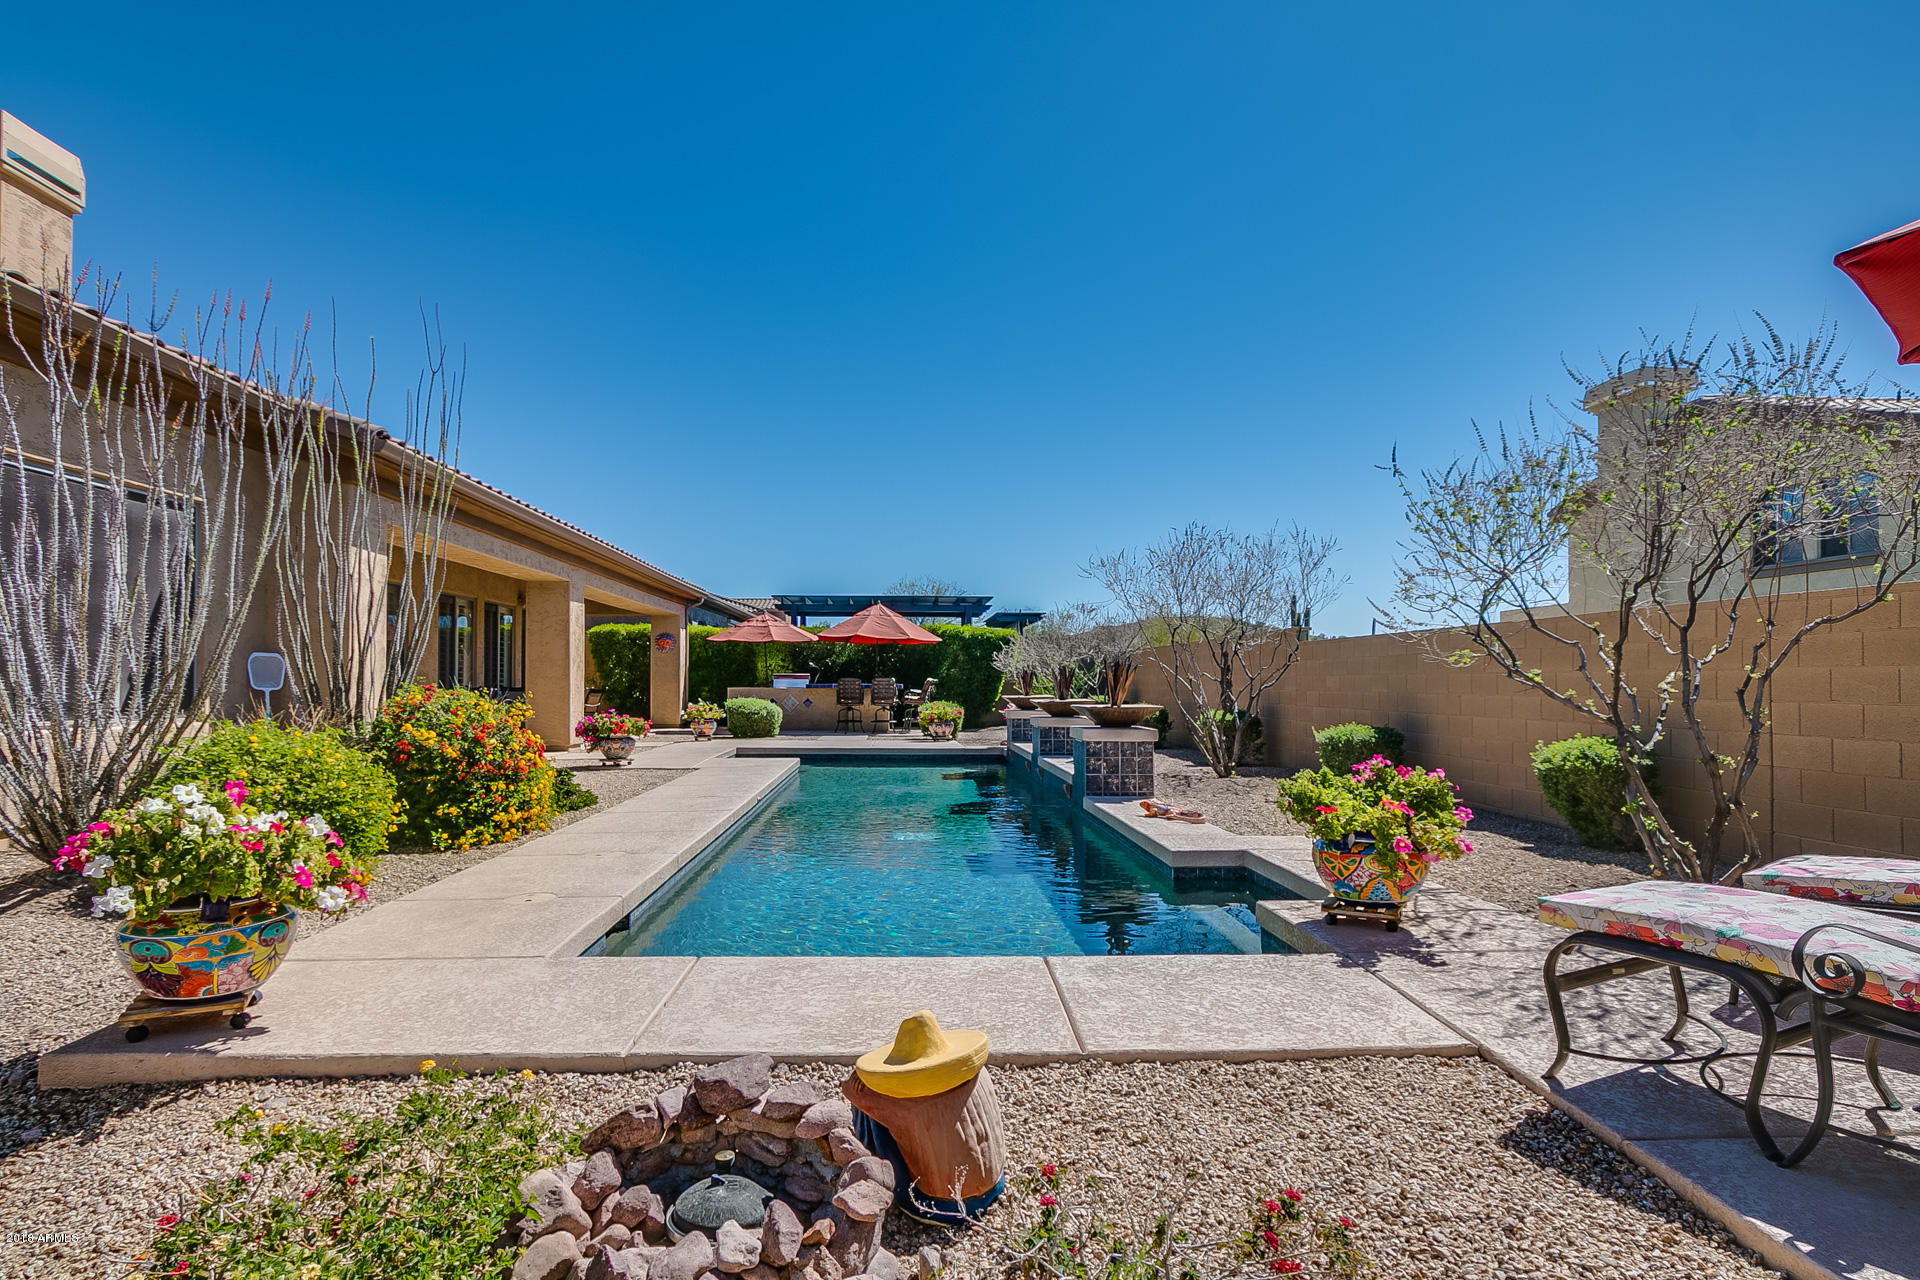 MLS 5766938 8531 E TWISTED LEAF Drive, Gold Canyon, AZ 85118 Gold Canyon AZ Gold Canyon Ranch